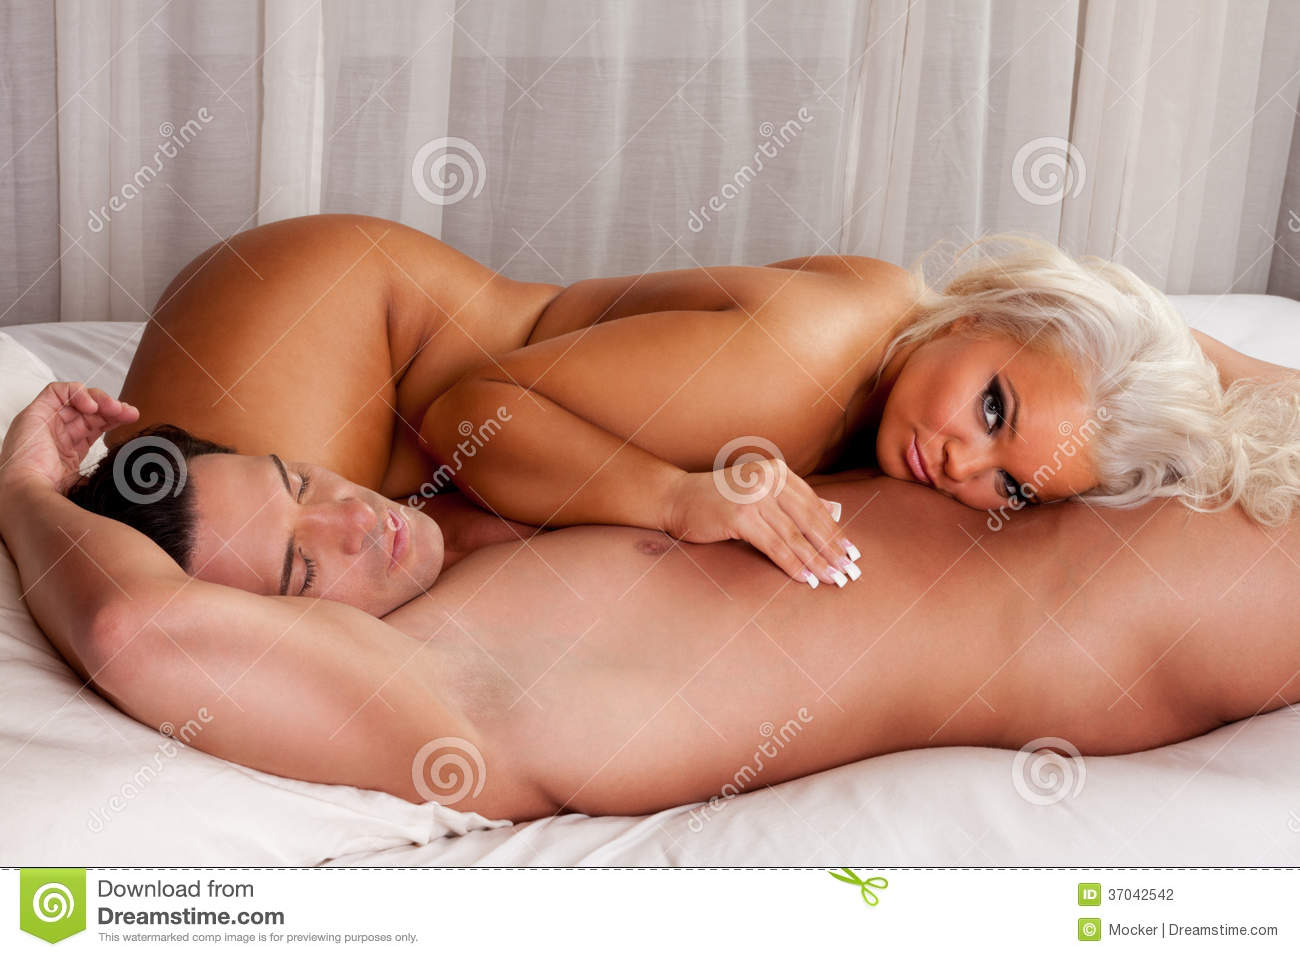 Couples photography love nude